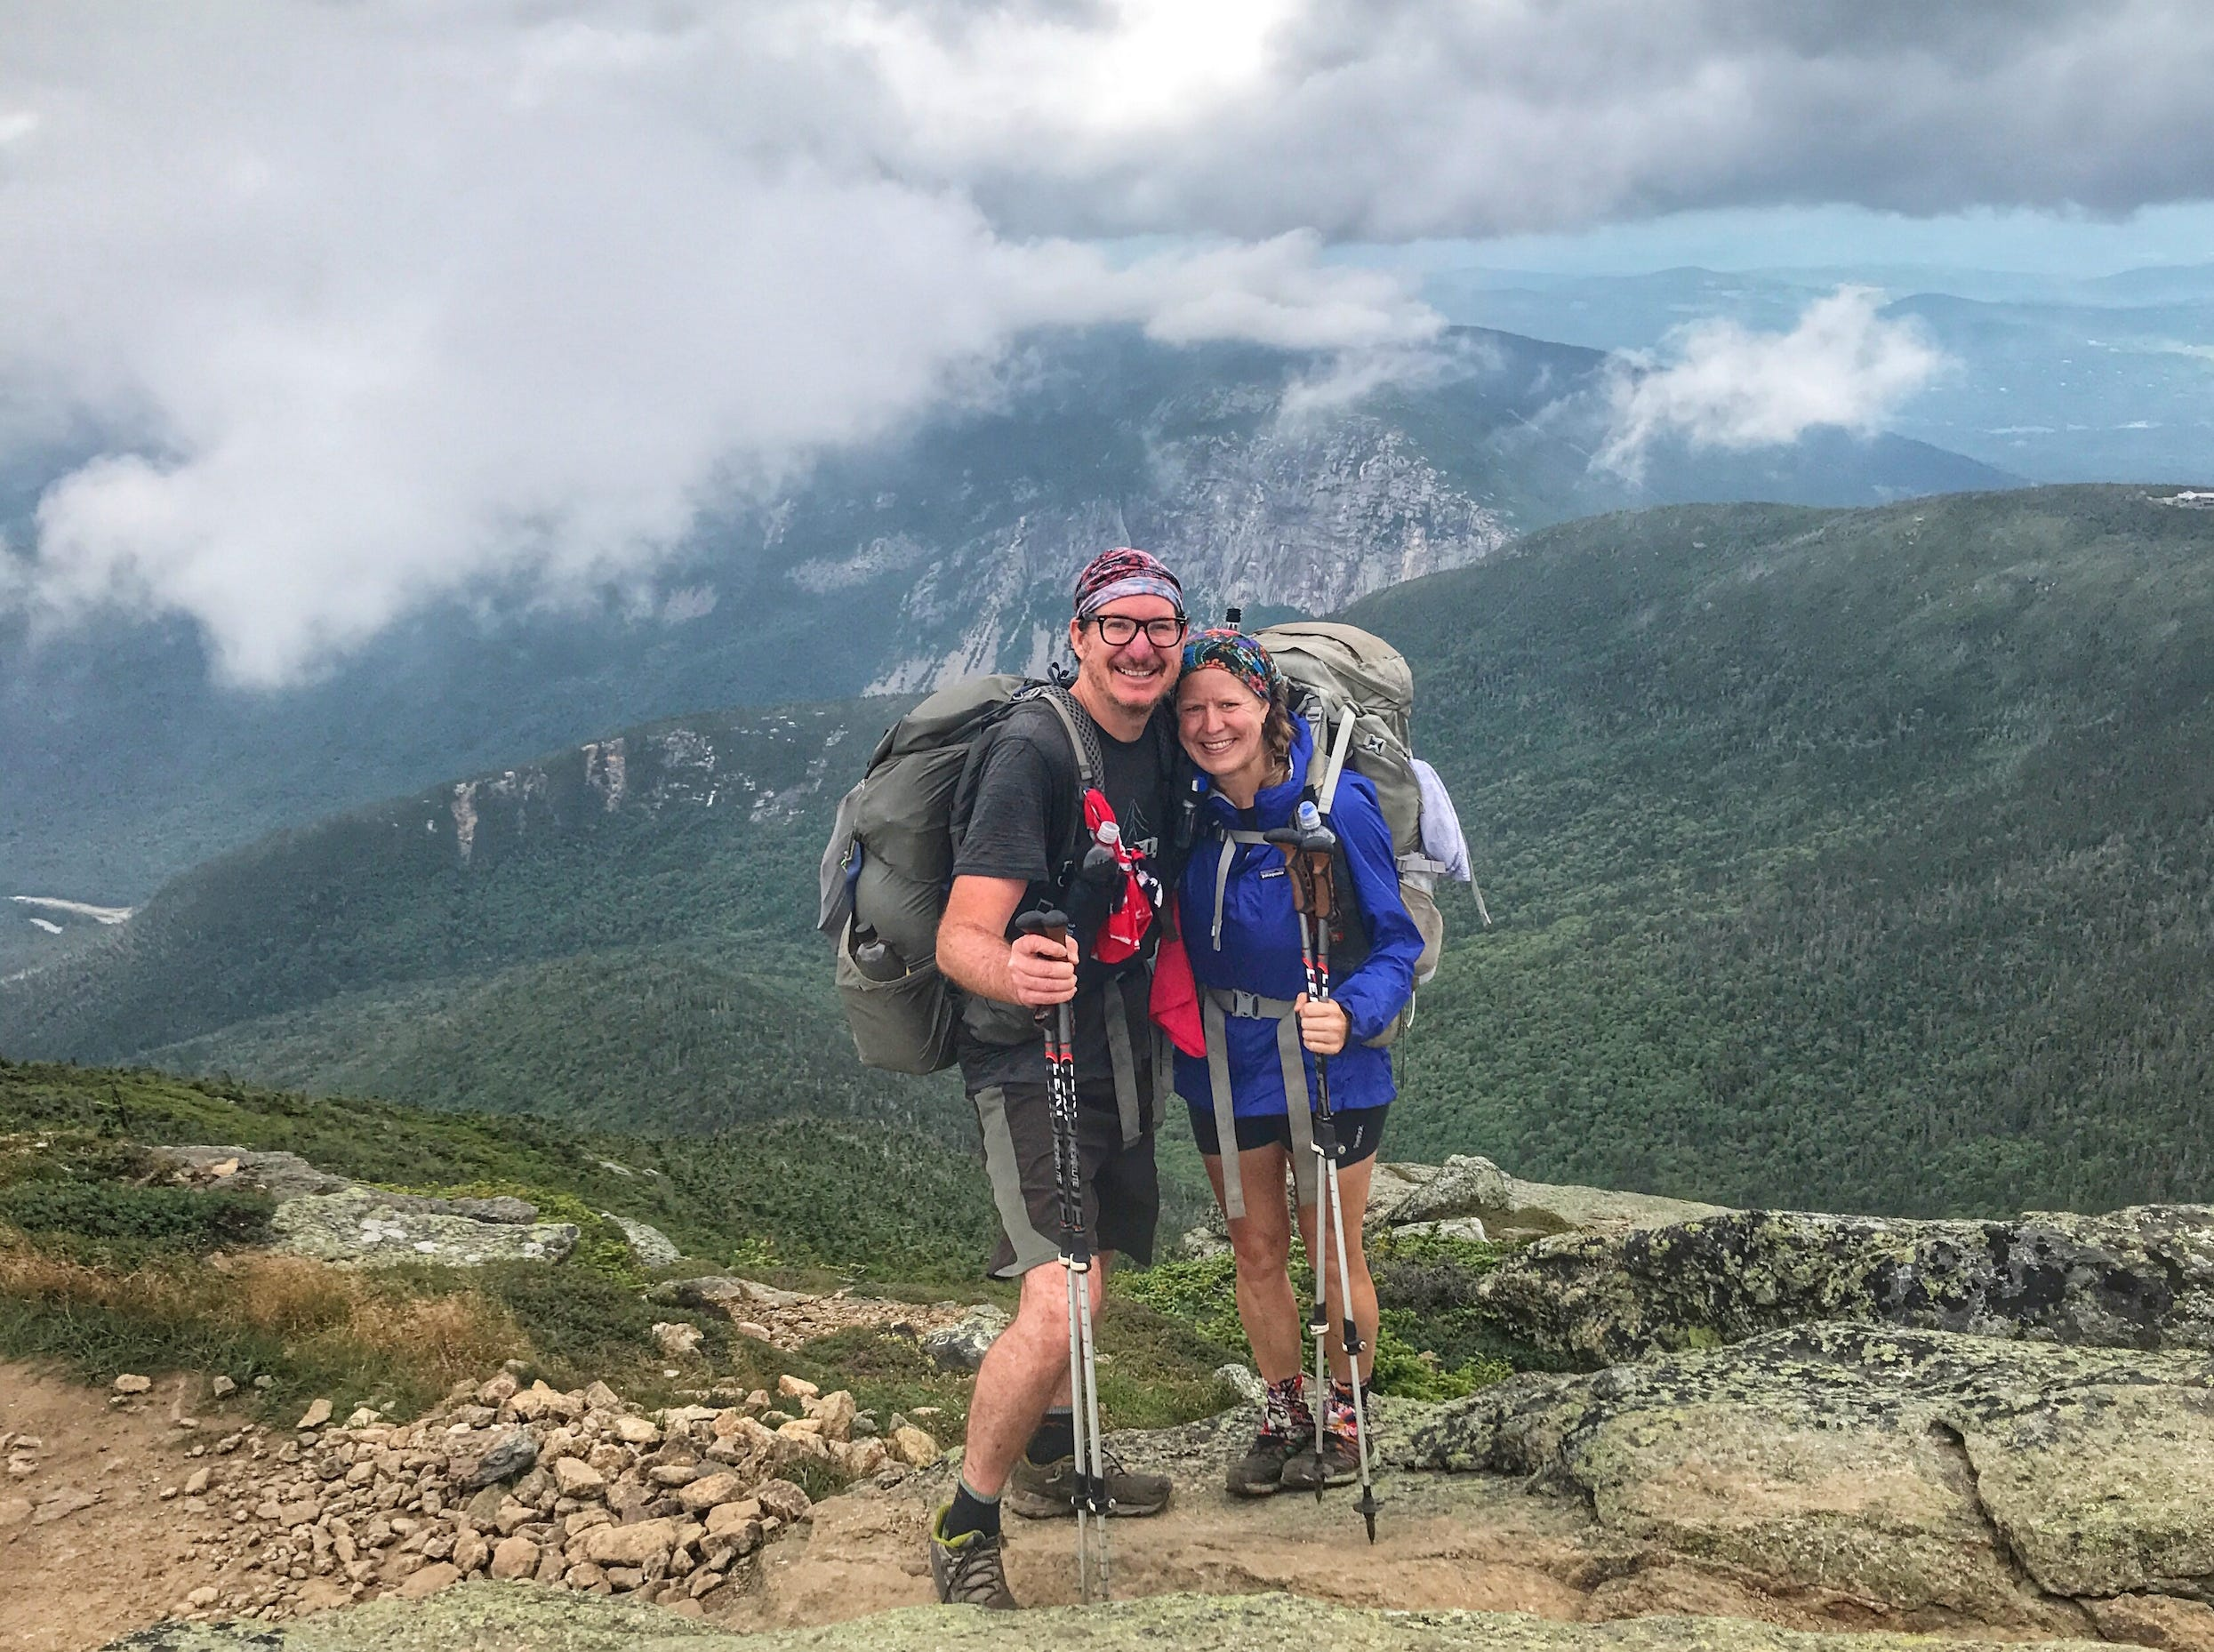 By day 147, the couple had made it to Franconia Ridge in New Hampshire.